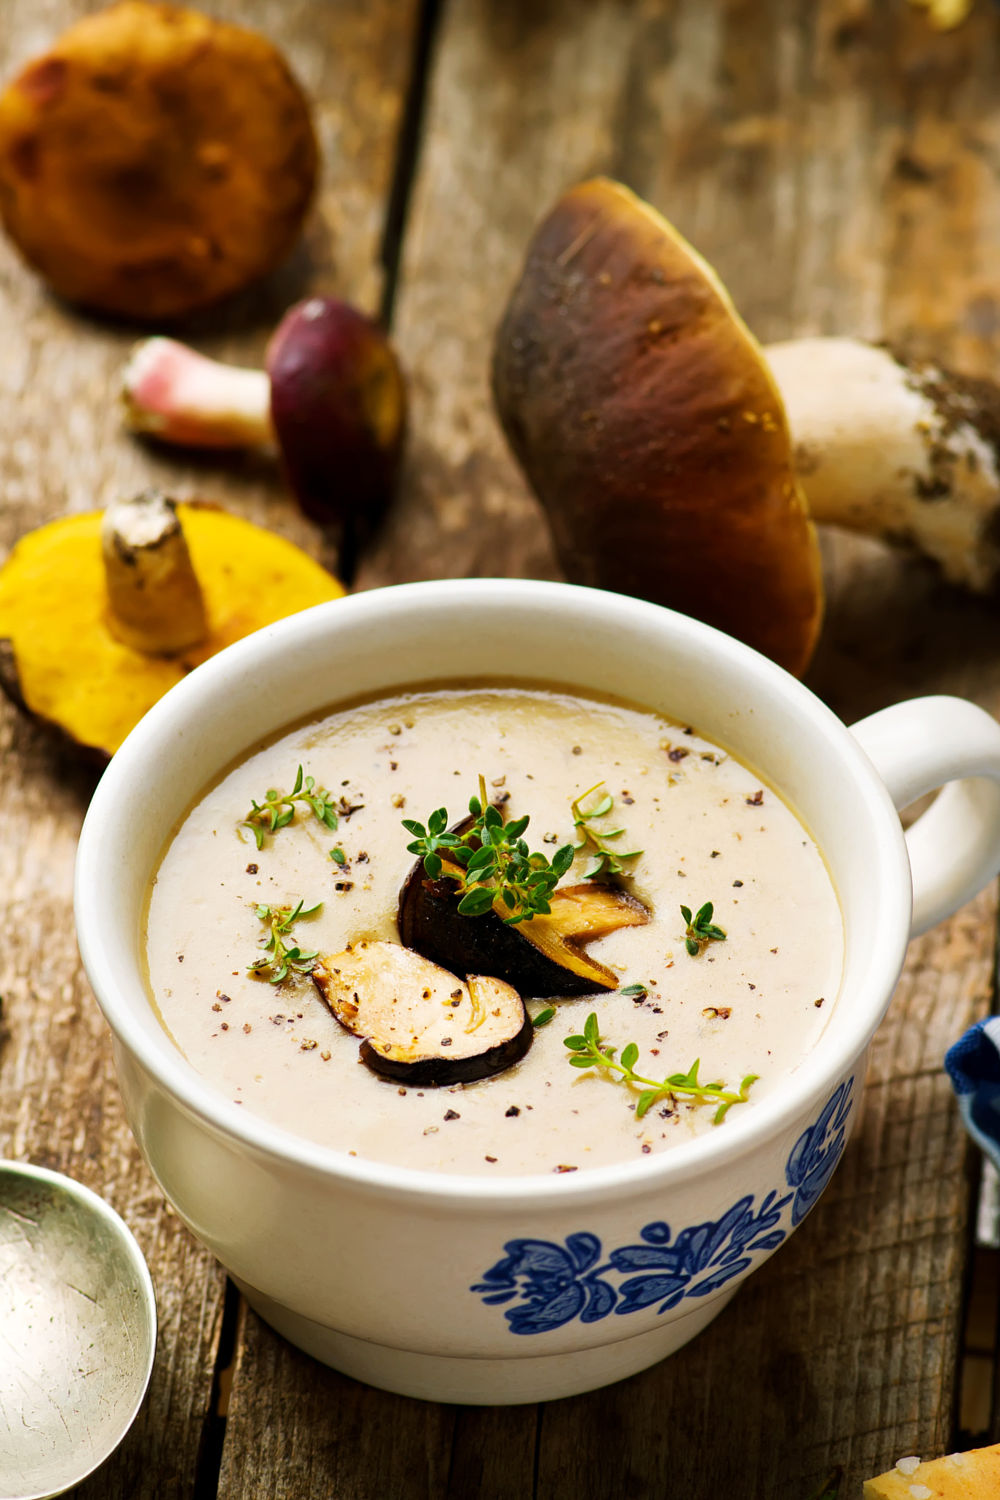 Forest mushrooms cream soup